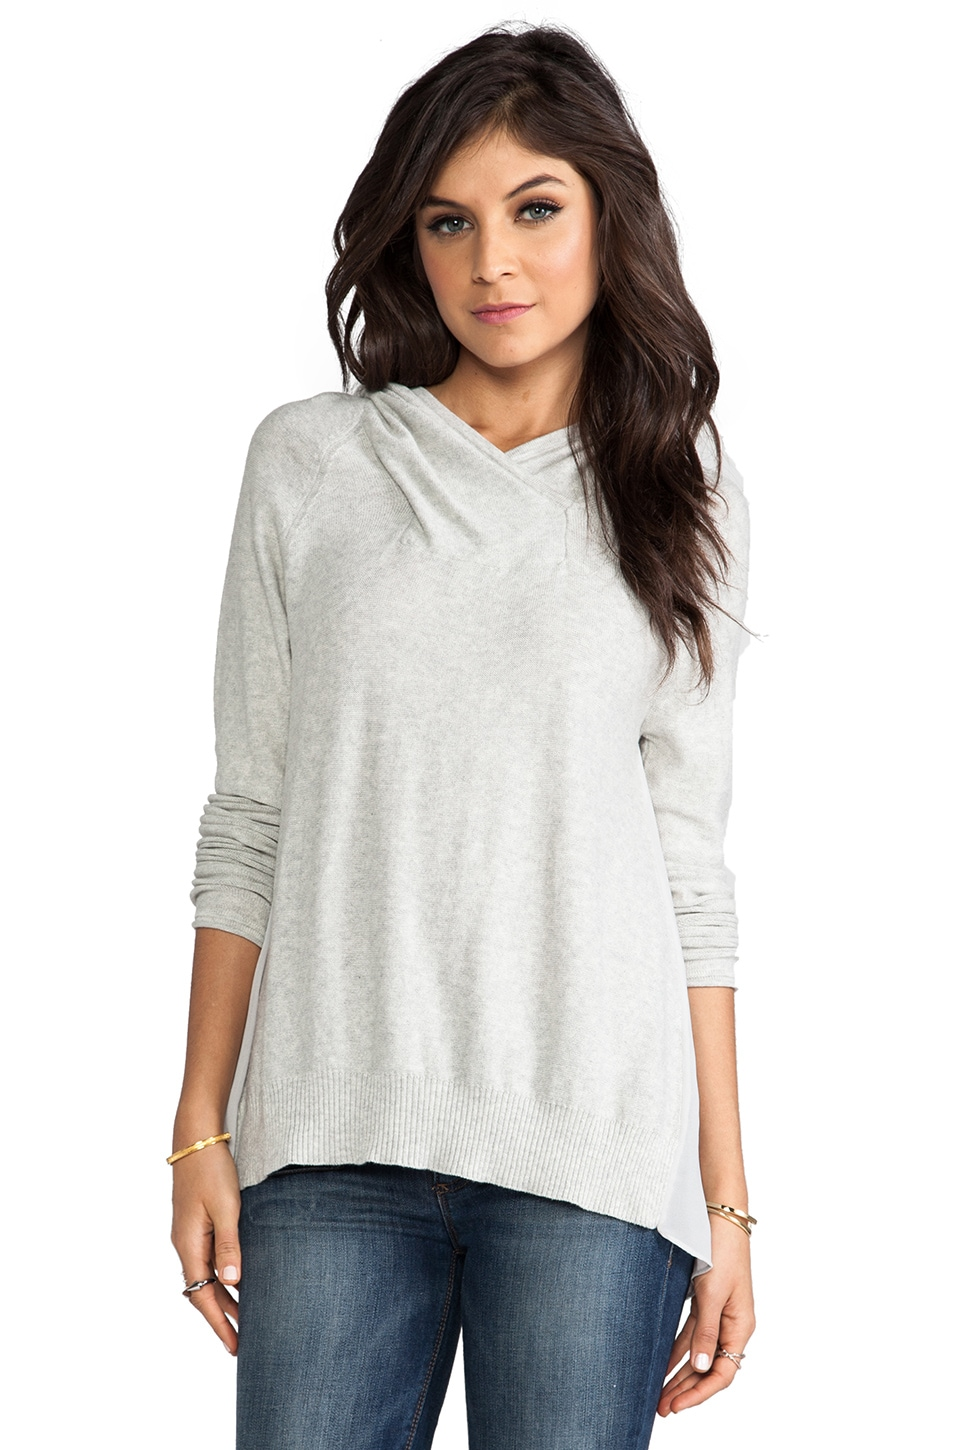 Central Park West Andover Hooded Sweater in Heather Grey